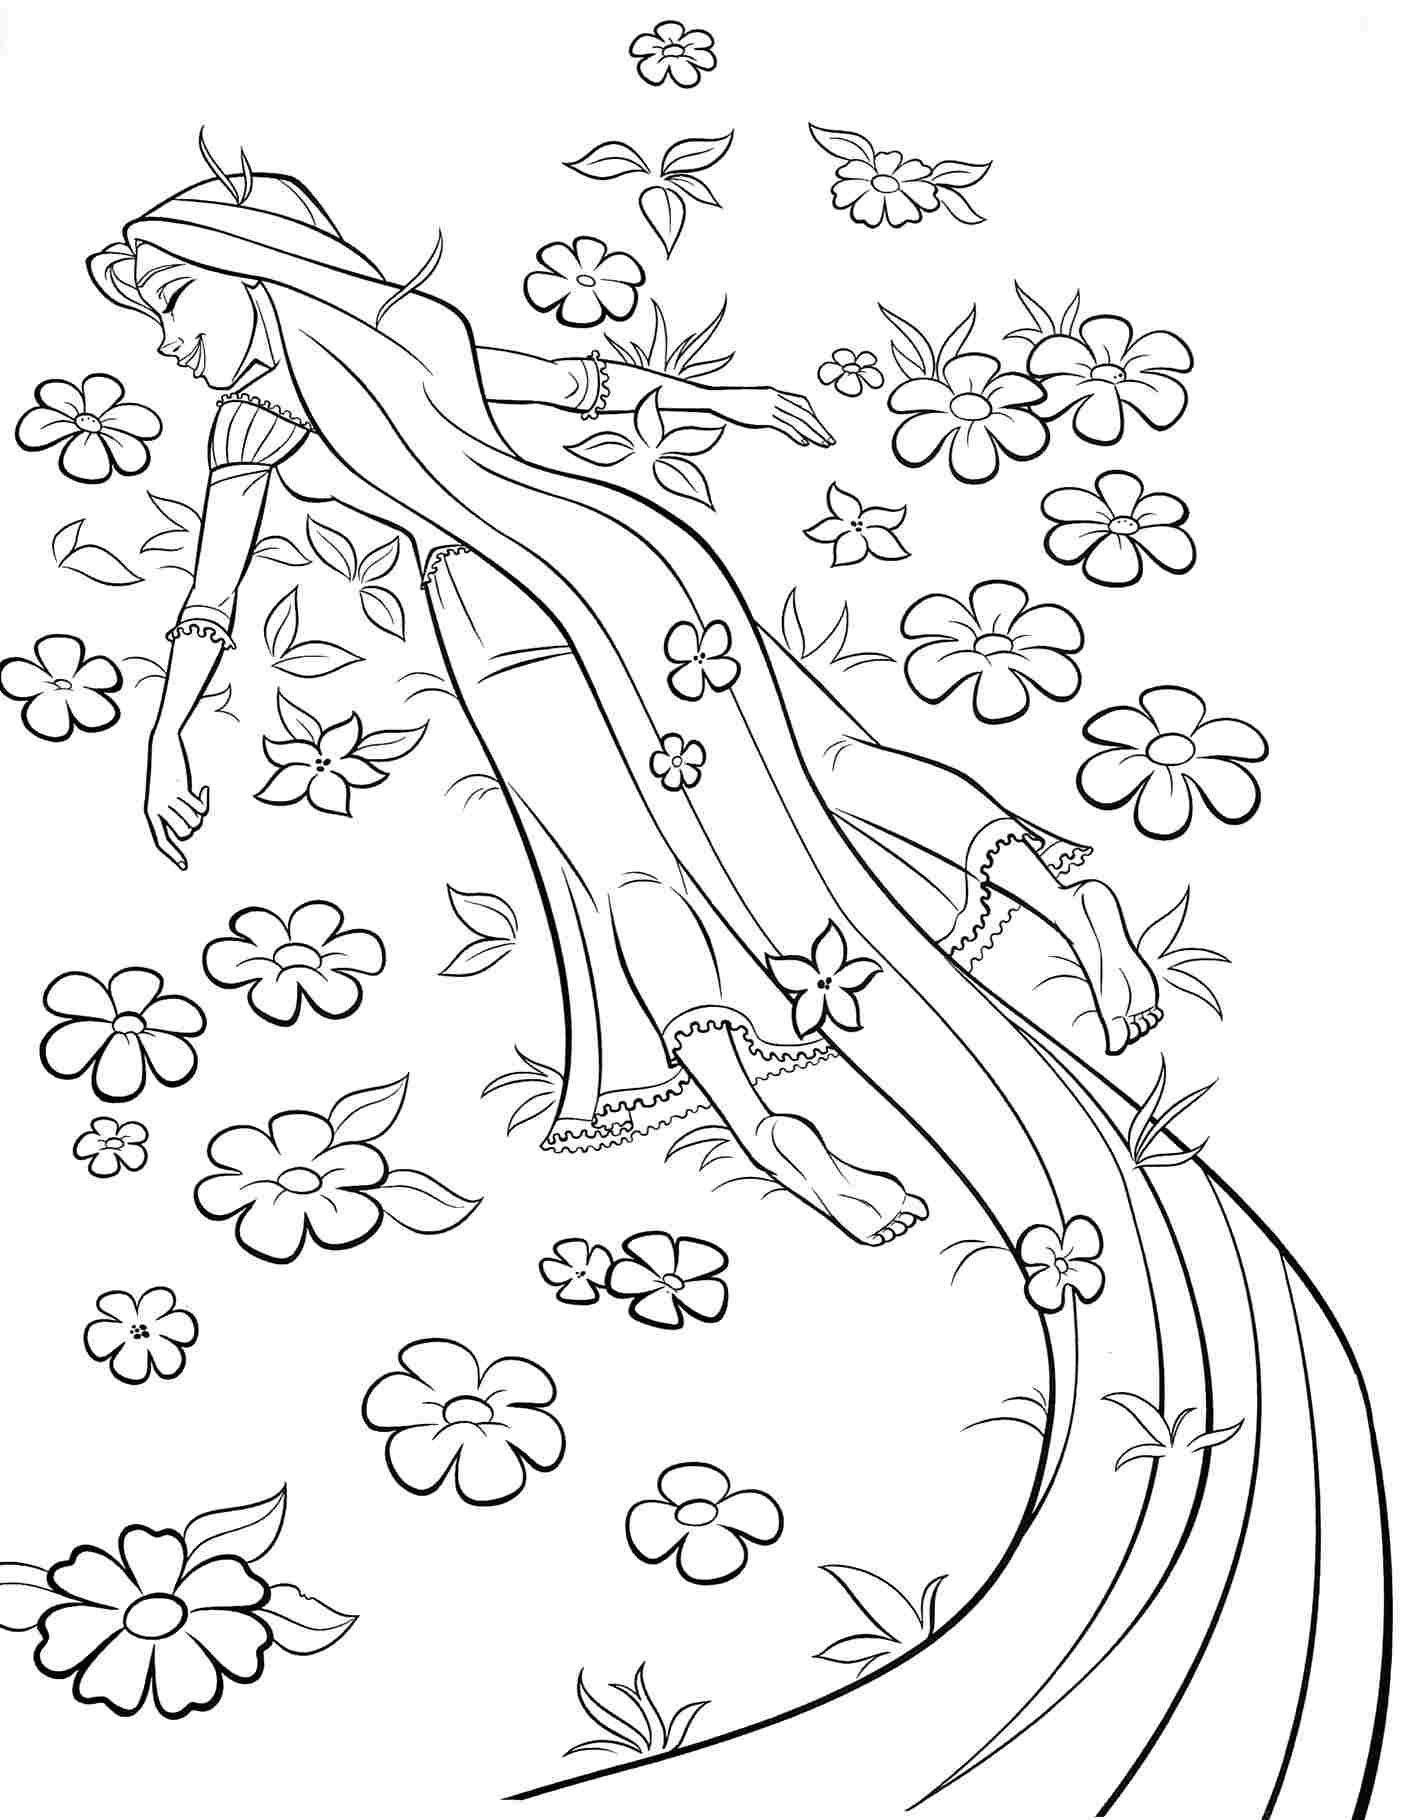 Disney Tangled Coloring Pages Printable | Disney Princess Rapunzel  Colouring Pages Free For Boys U0026 Girls #20612